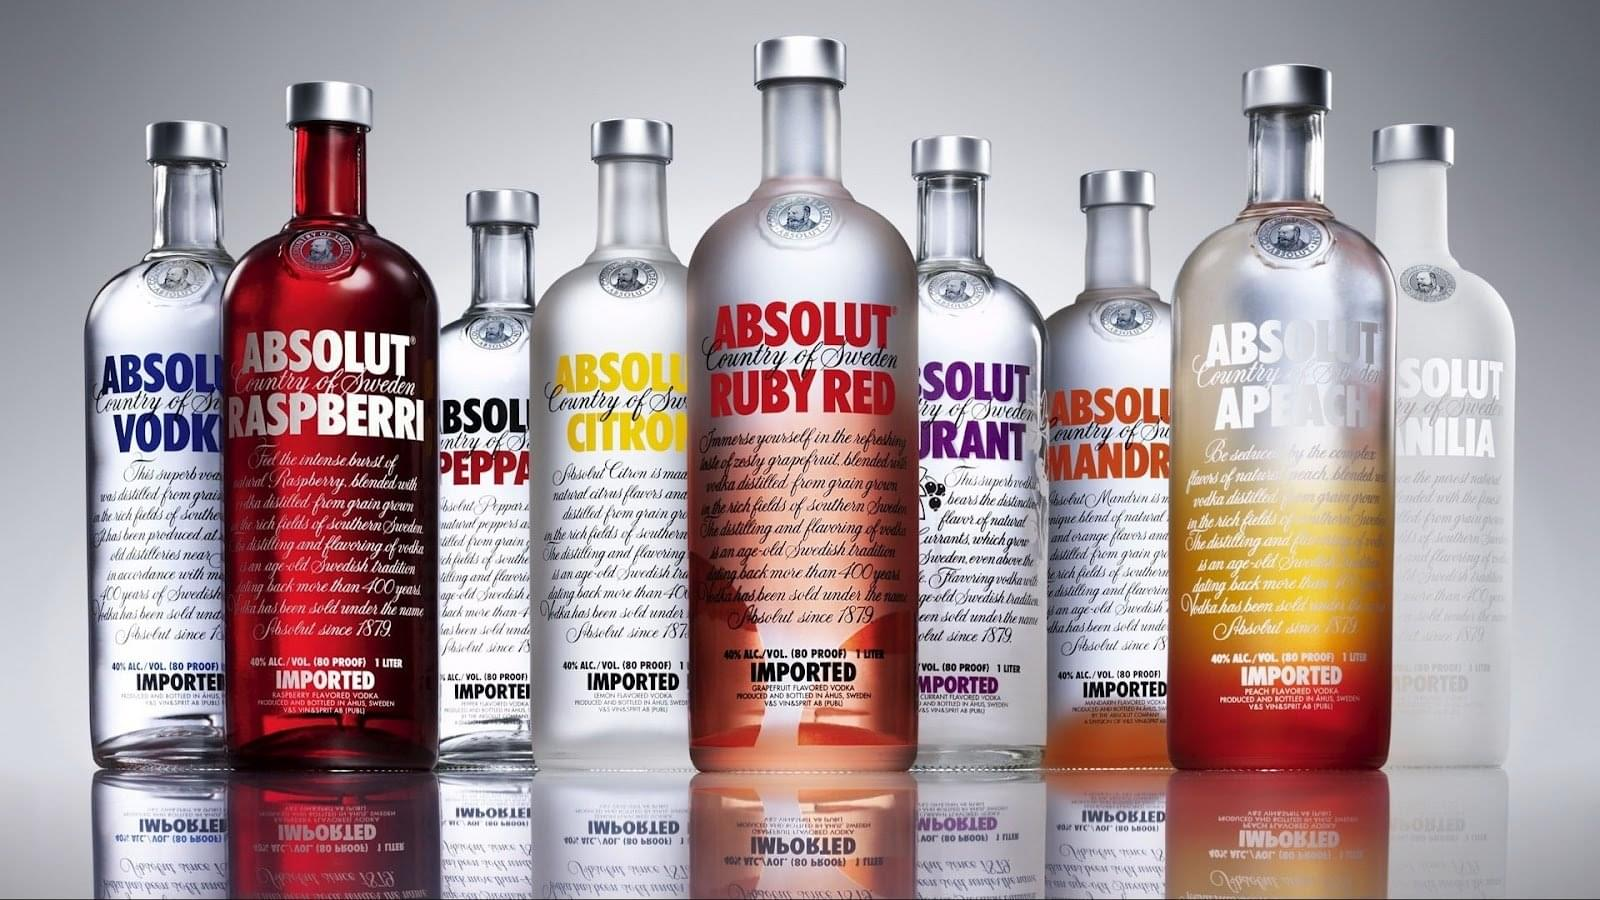 absolut-vodka-sortiments-1920x1080